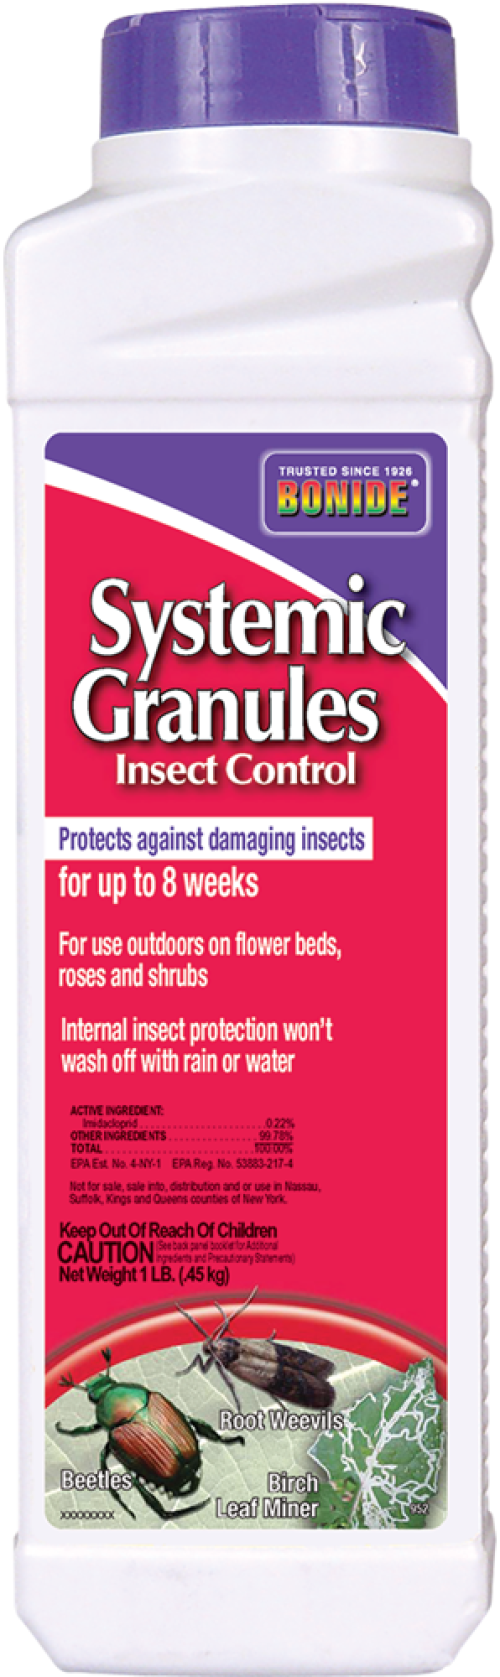 Systemic Granules Insect Control